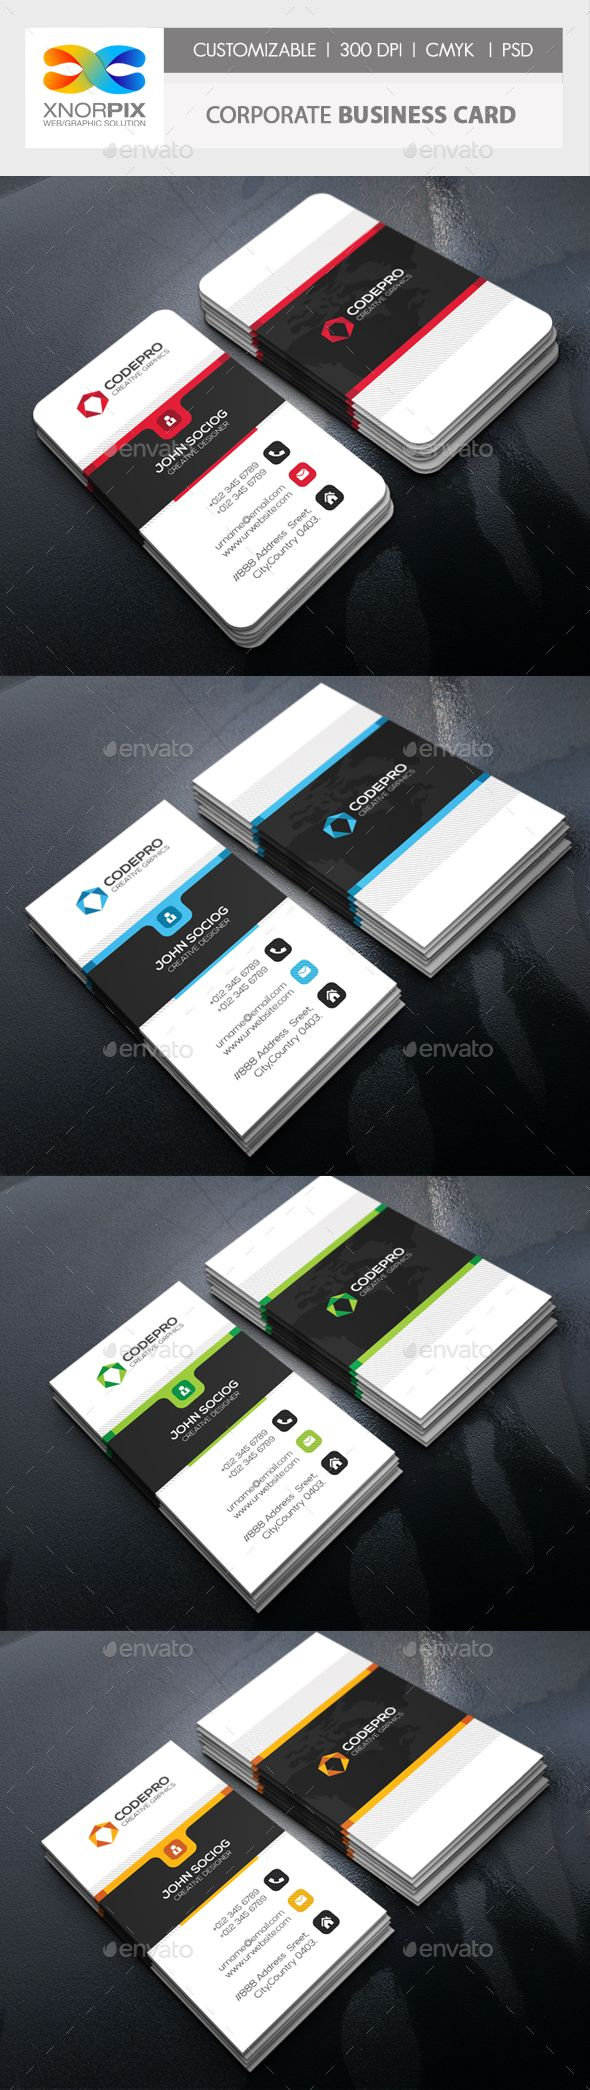 8 Best Business Cards For Technology Companies Startups Networking